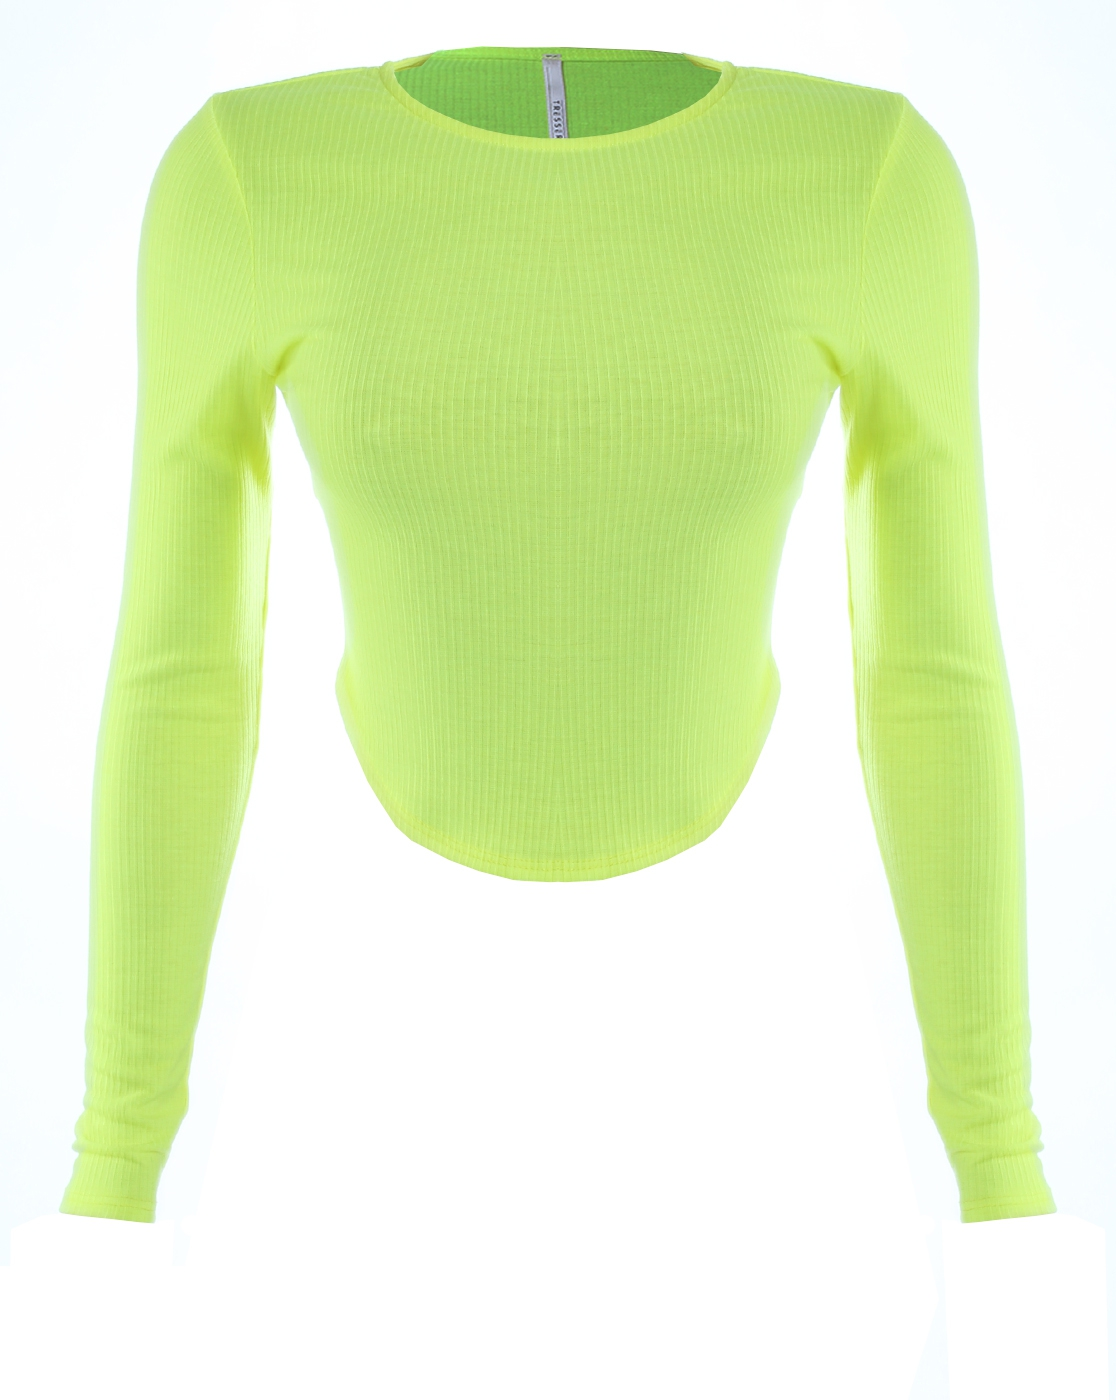 RIB LONG SLEEVE CROP TOP NEON YELLOW - orangeshine.com